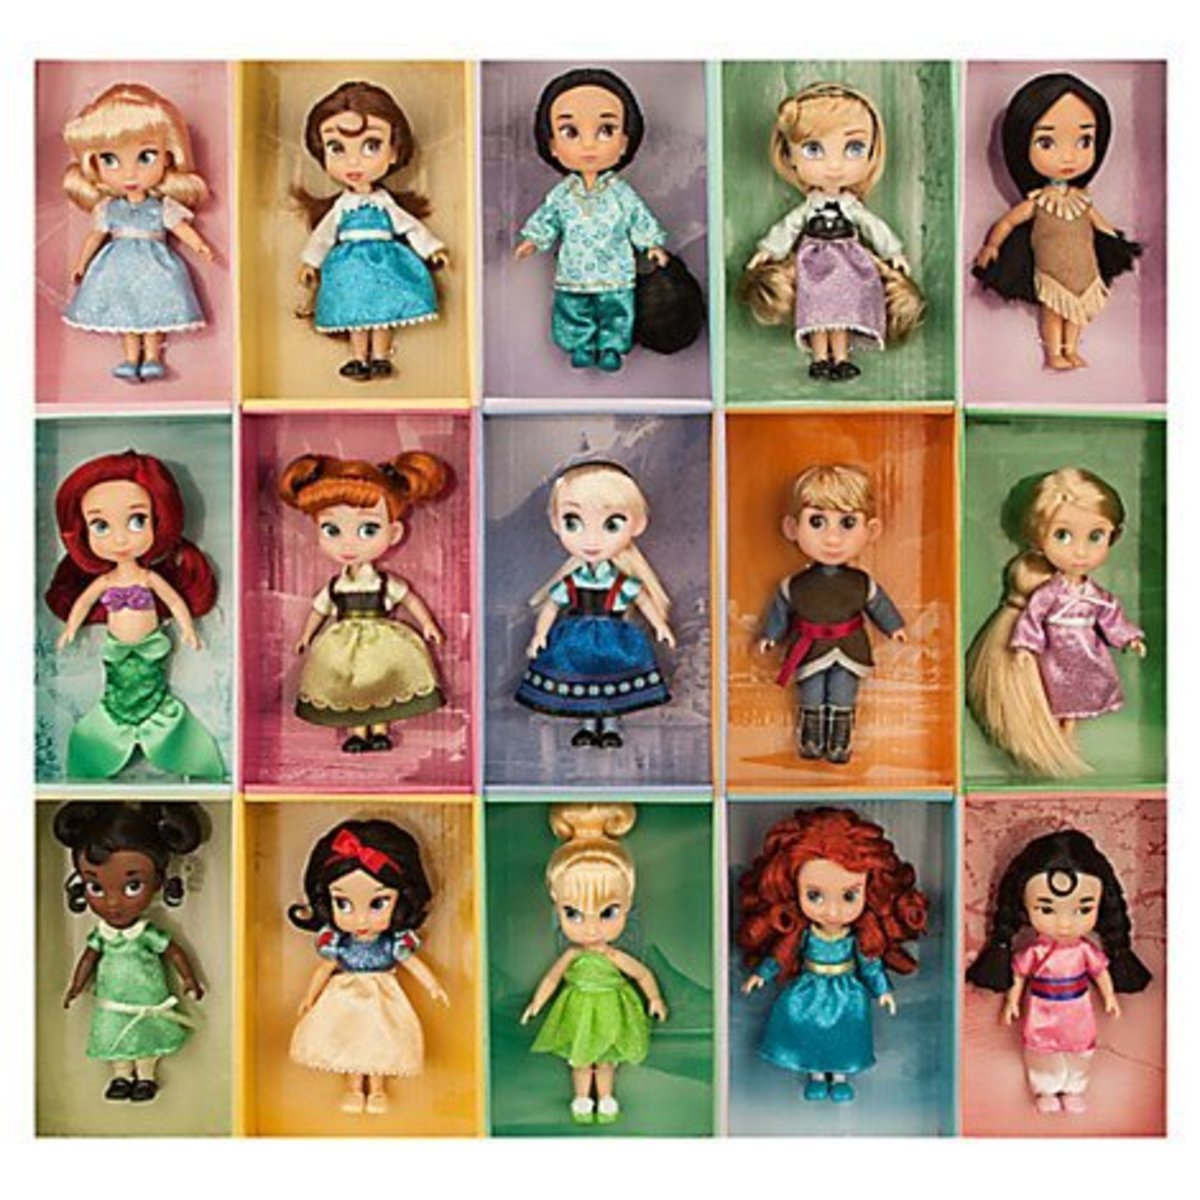 Mini doll collection includes Cinderella, Belle, Jasmine, Aurora, Pocahontas, Ariel, Anna, Elsa, Kristoff, Rapunzel, Tiana, Snow White, Tinkerbell, Merida and Mulan.